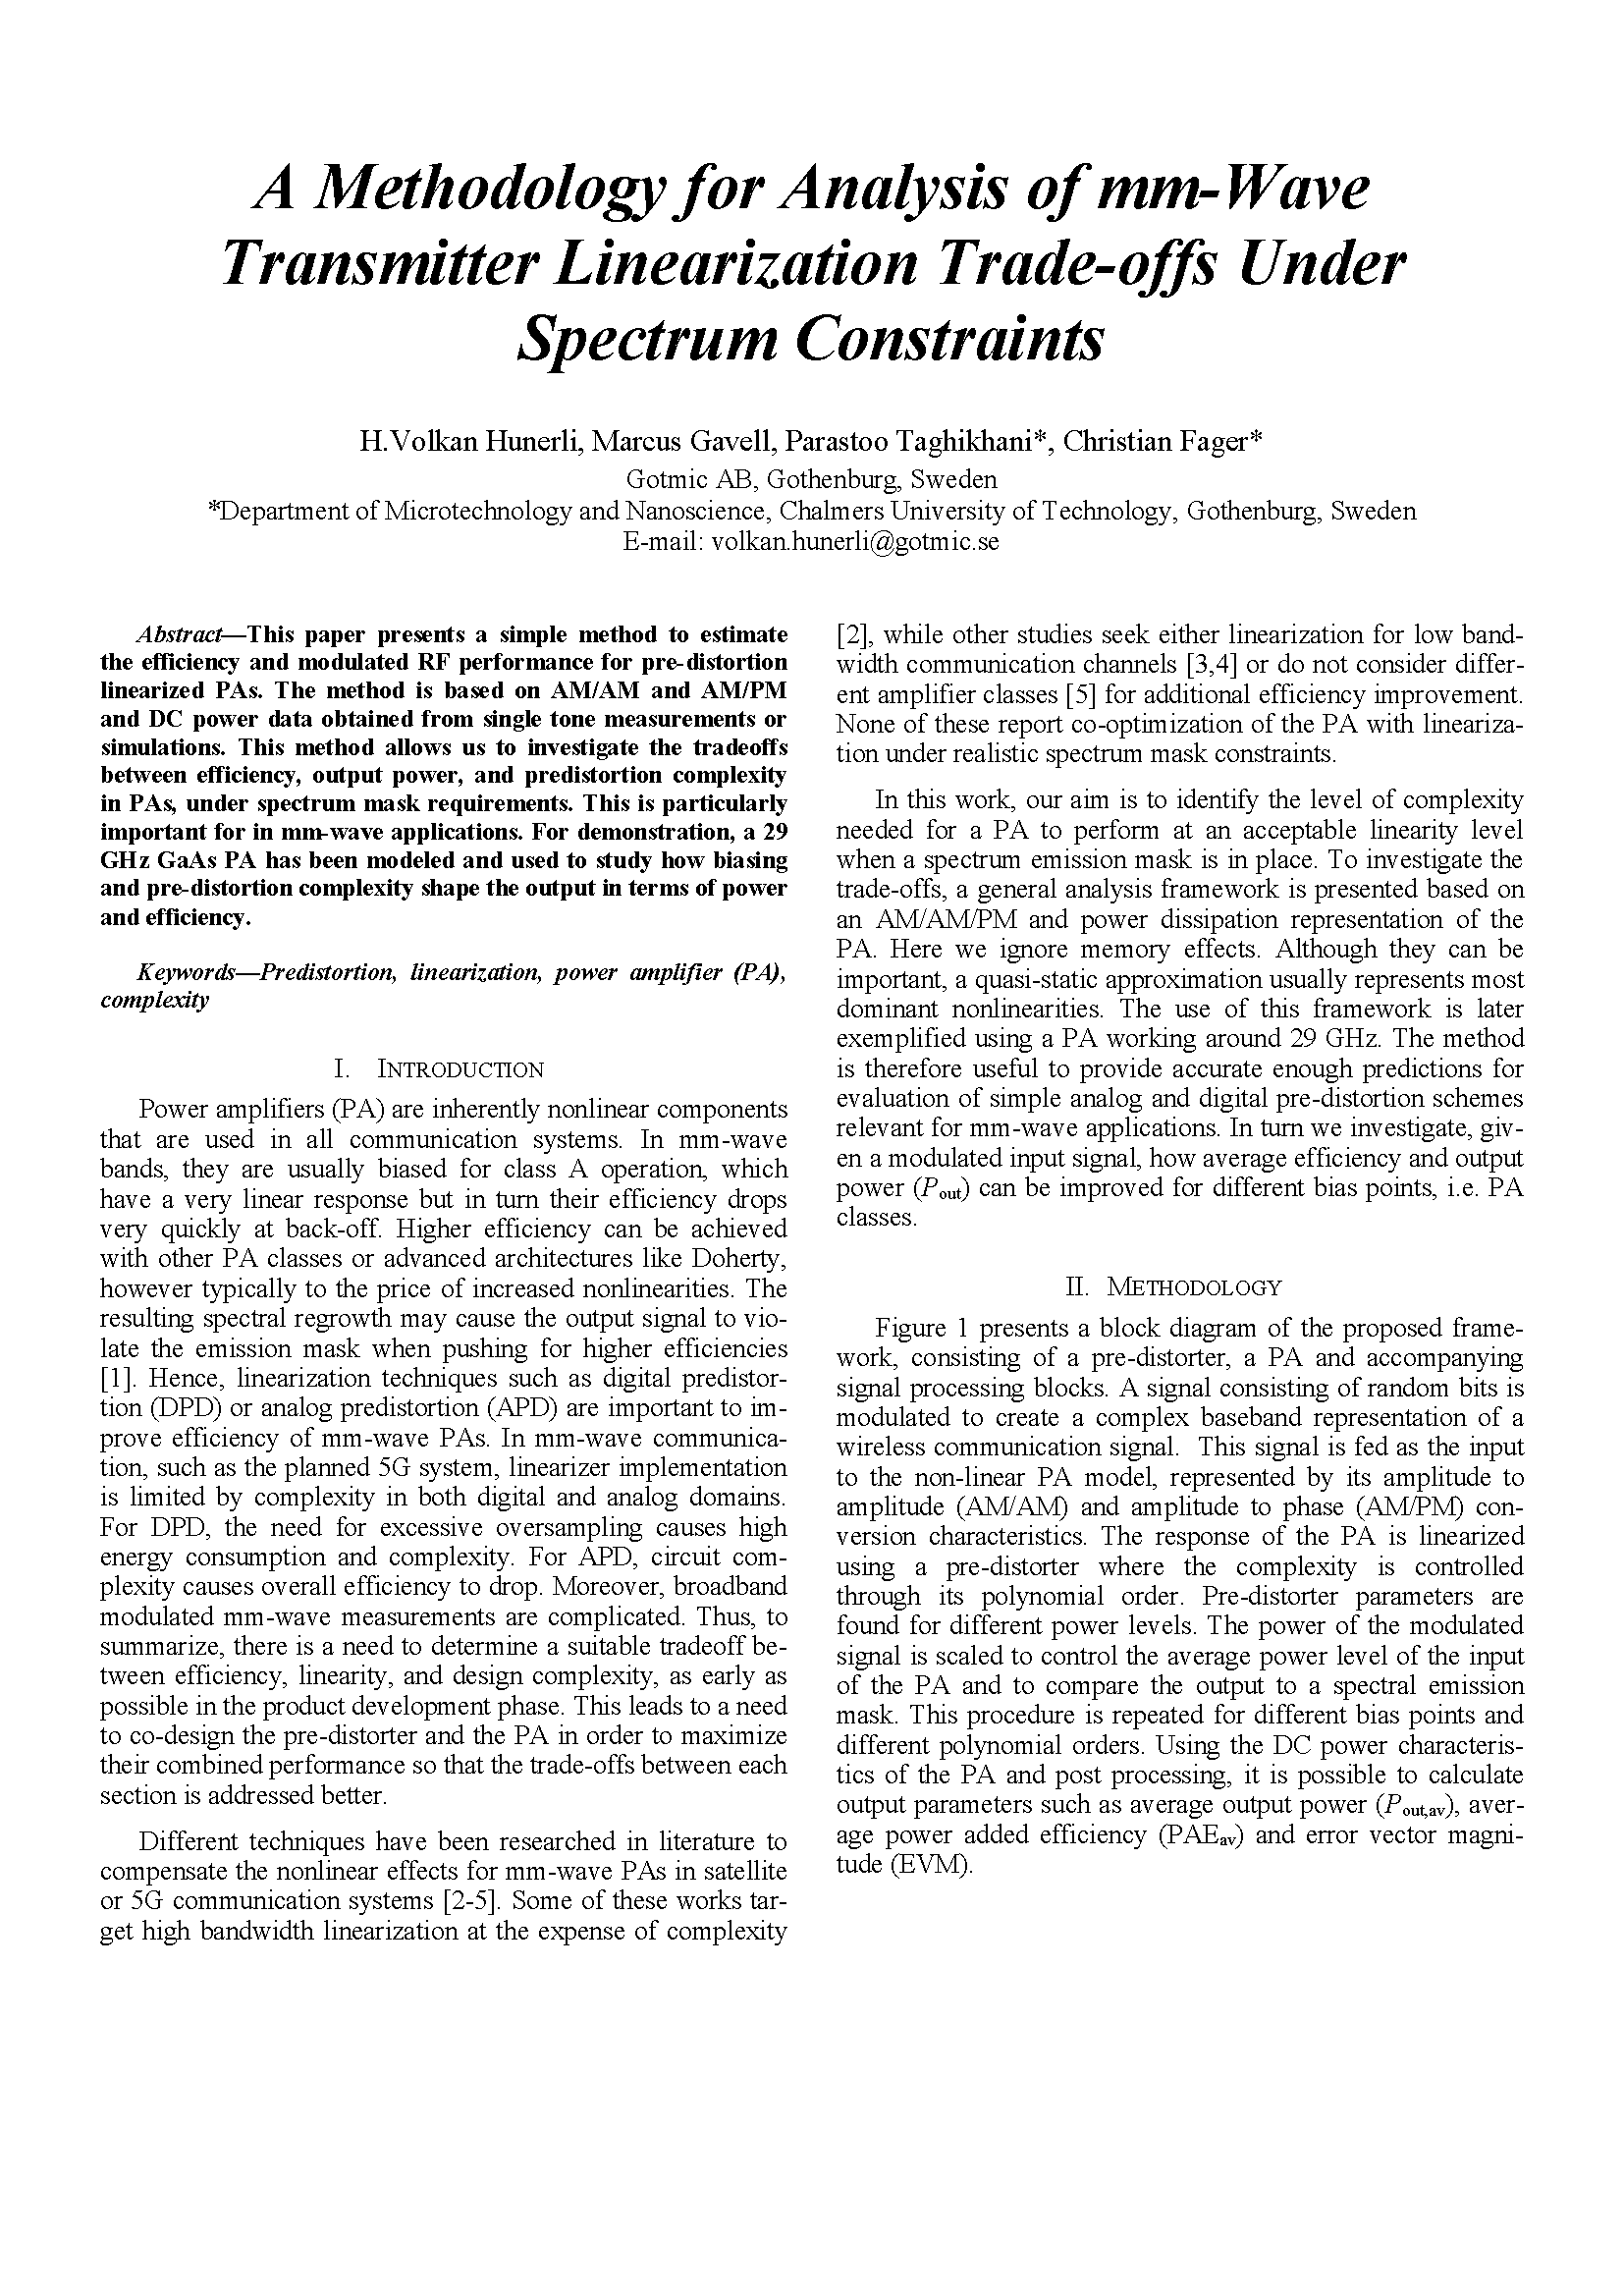 vh-lin-compl-tradeoff-hunerli-2018-page-1.png